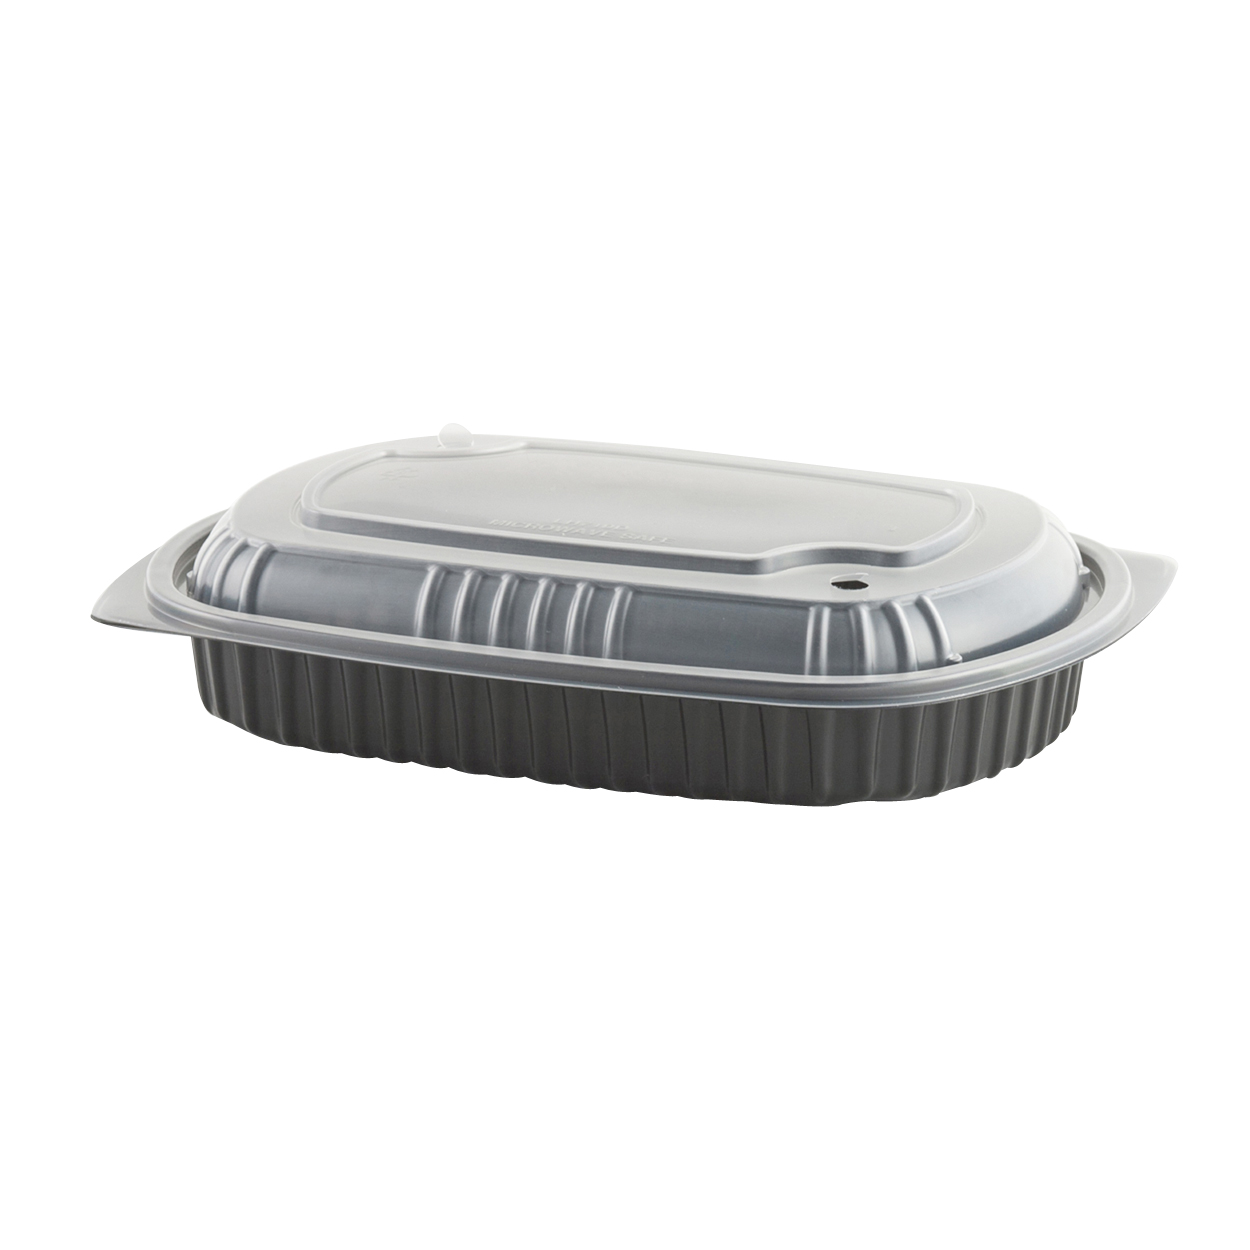 4117100 CDM710 & LH710D Microraves Combo Microwavable